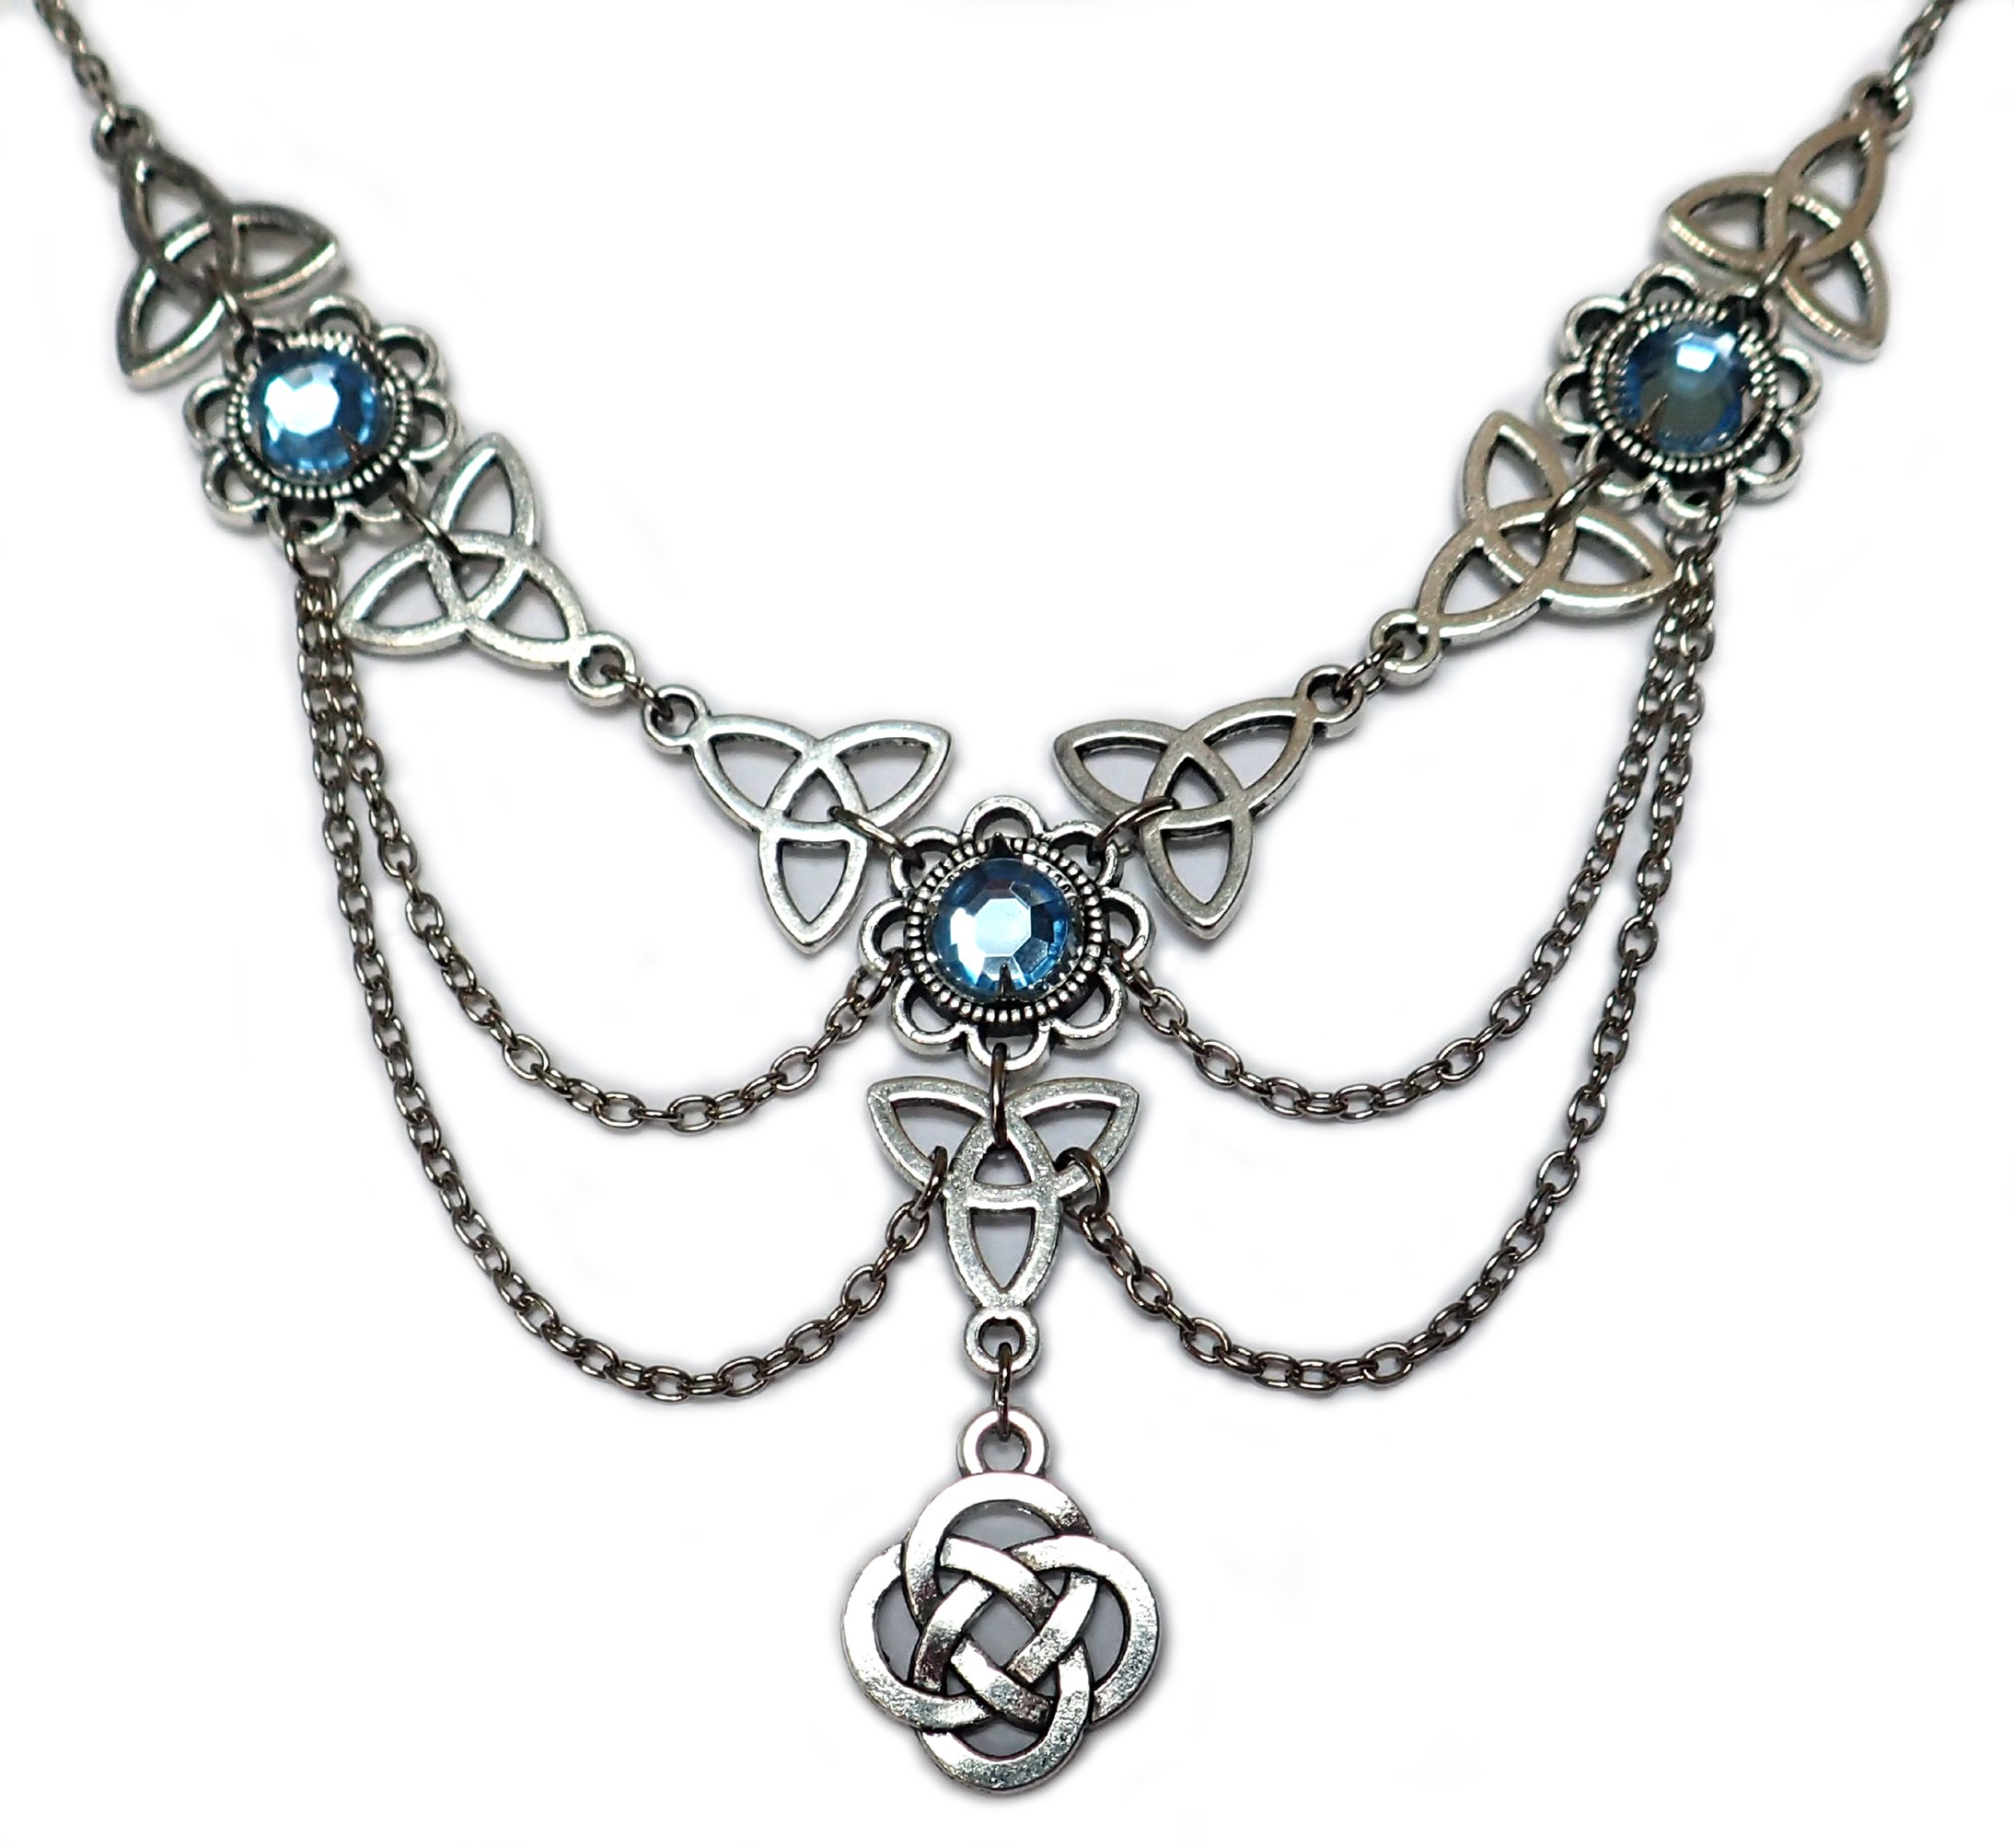 Celtic Triquetra Trinity Knot Silver Draping Chain Necklace Light Blue